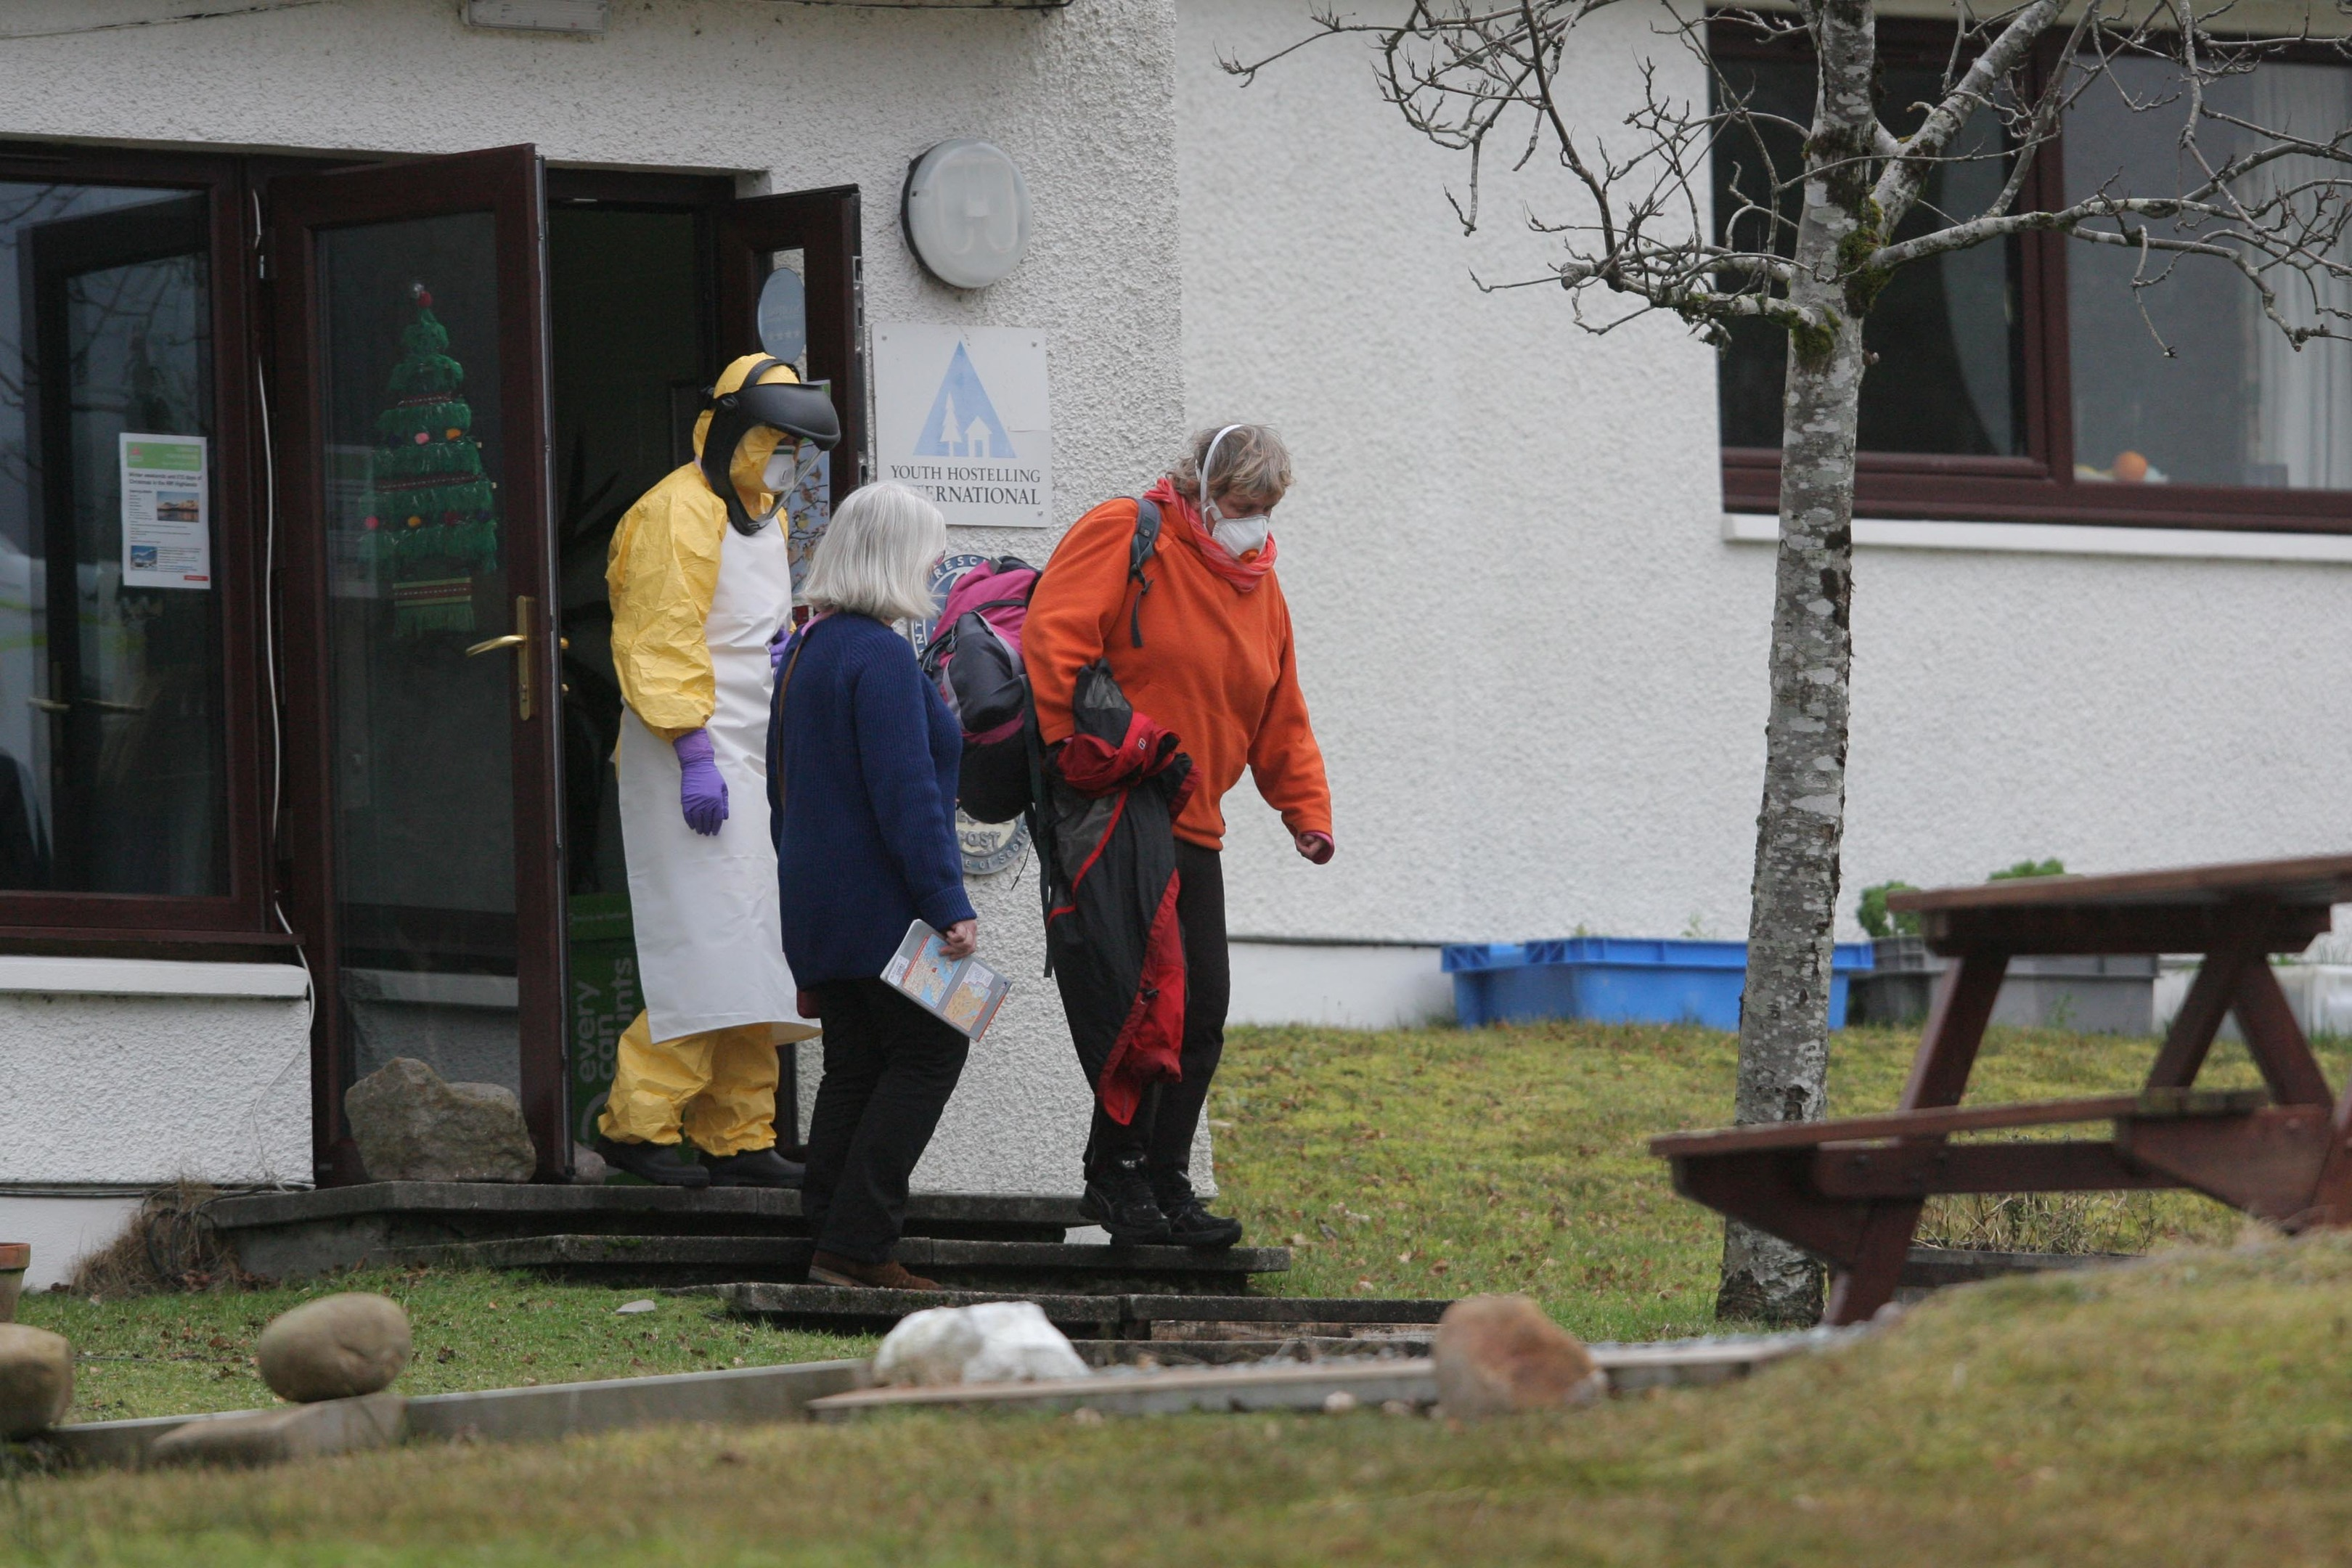 A suspected Ebola patient staying at Torridon Youth Hostel was transported to Aberdeen Royal Infirmary where she was tested